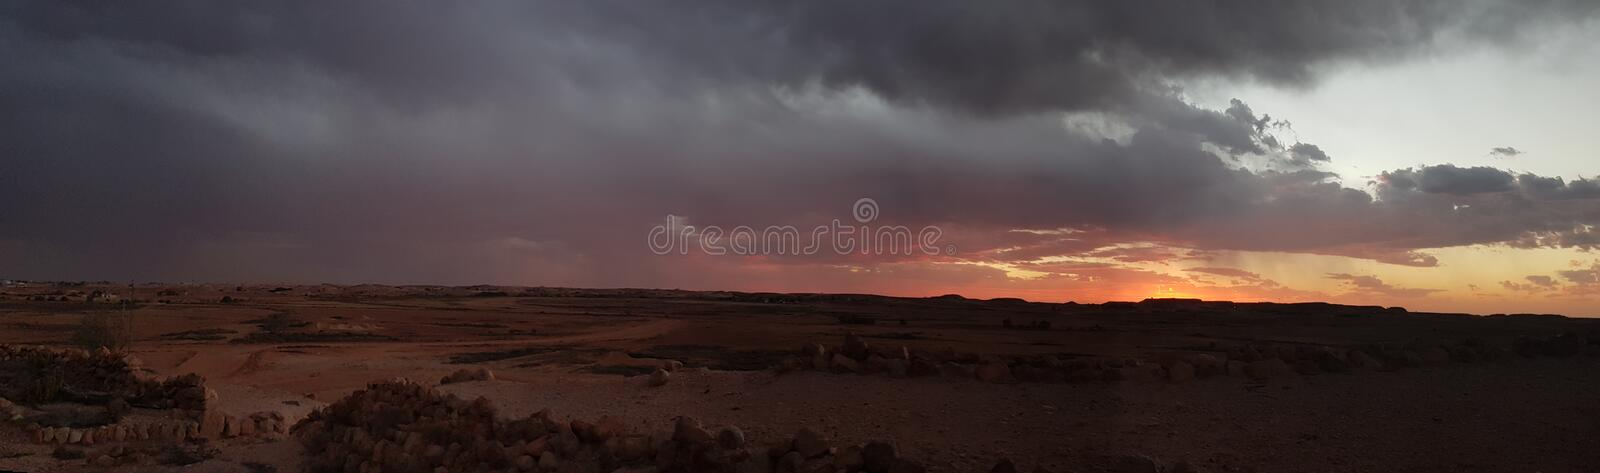 Coober pedy South Australia opal mining town sunset royalty free stock image